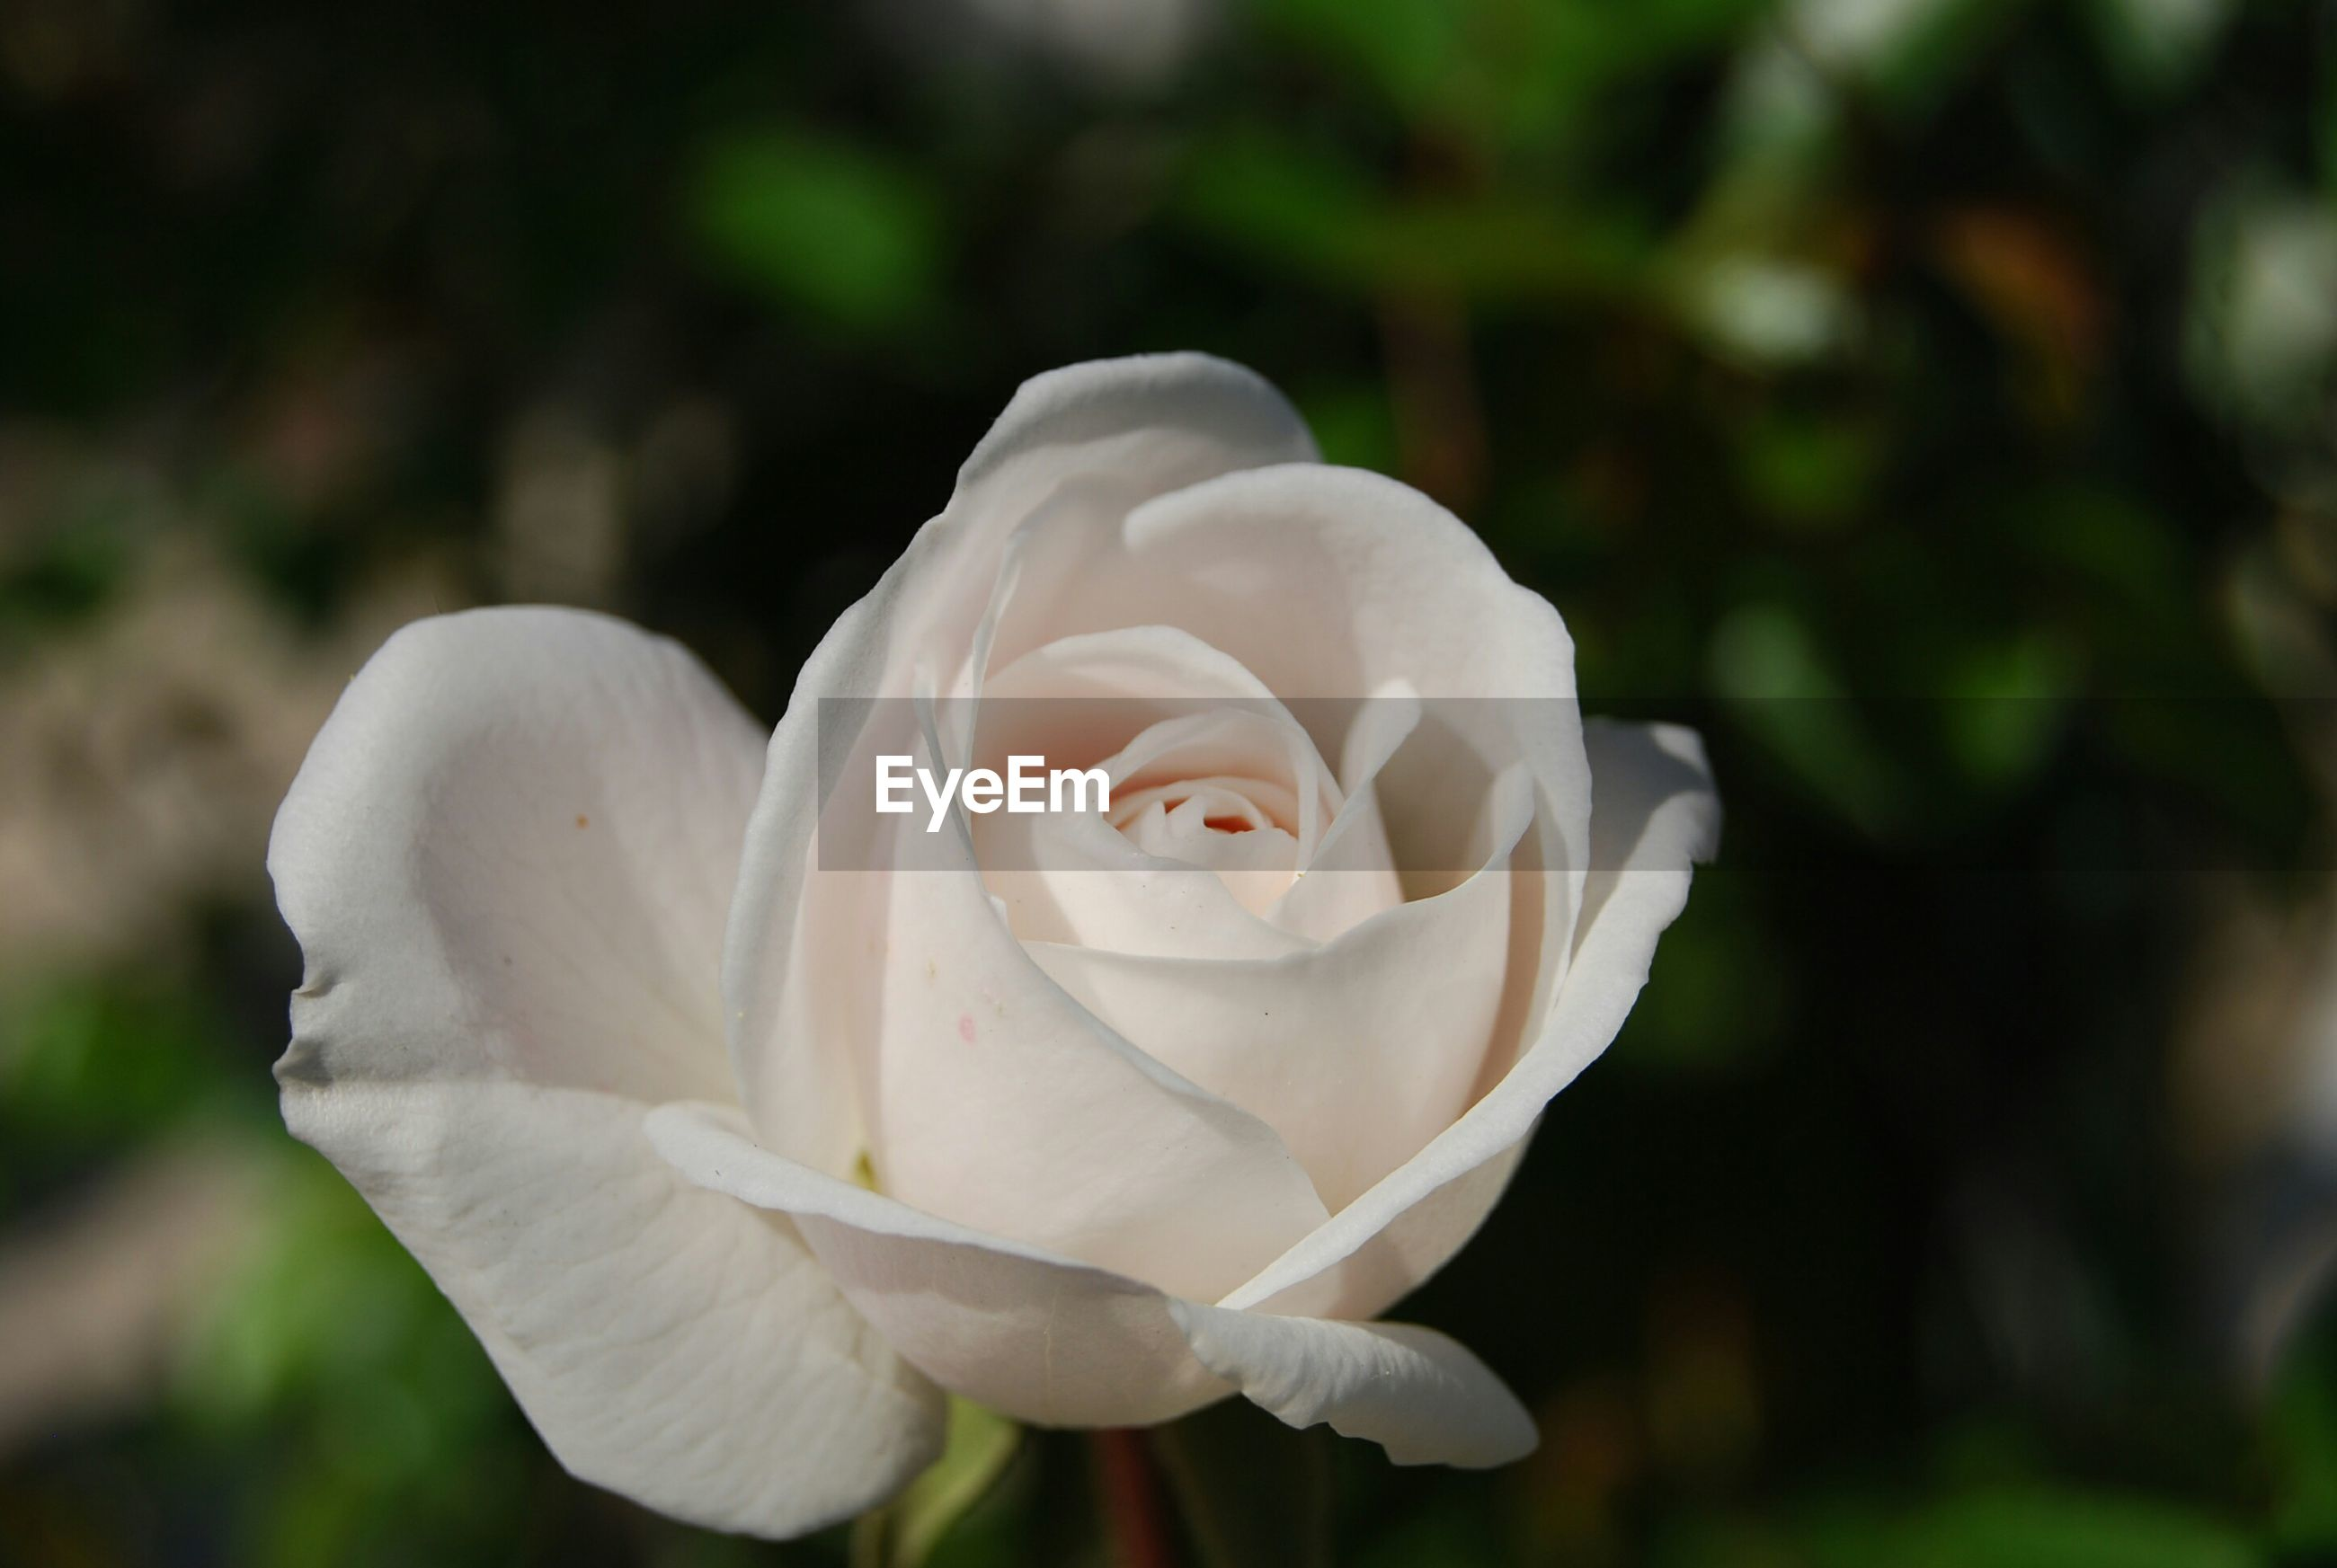 flower, petal, flower head, white color, fragility, freshness, focus on foreground, growth, close-up, beauty in nature, rose - flower, blooming, white, nature, single flower, in bloom, selective focus, outdoors, day, park - man made space